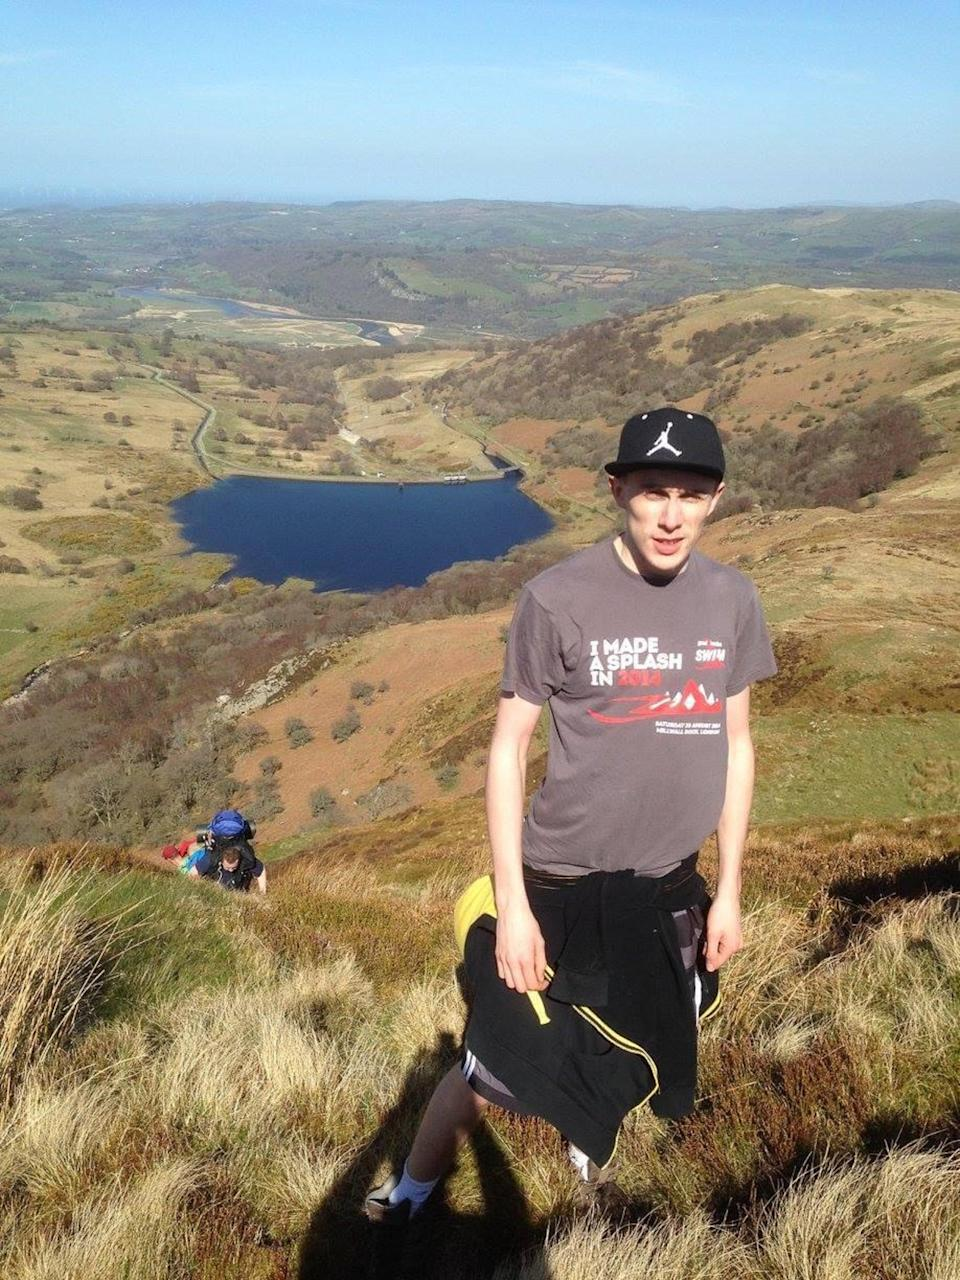 Jack Bayley, 20, stands on a hill, wearing a grey t-shirt and a black cap